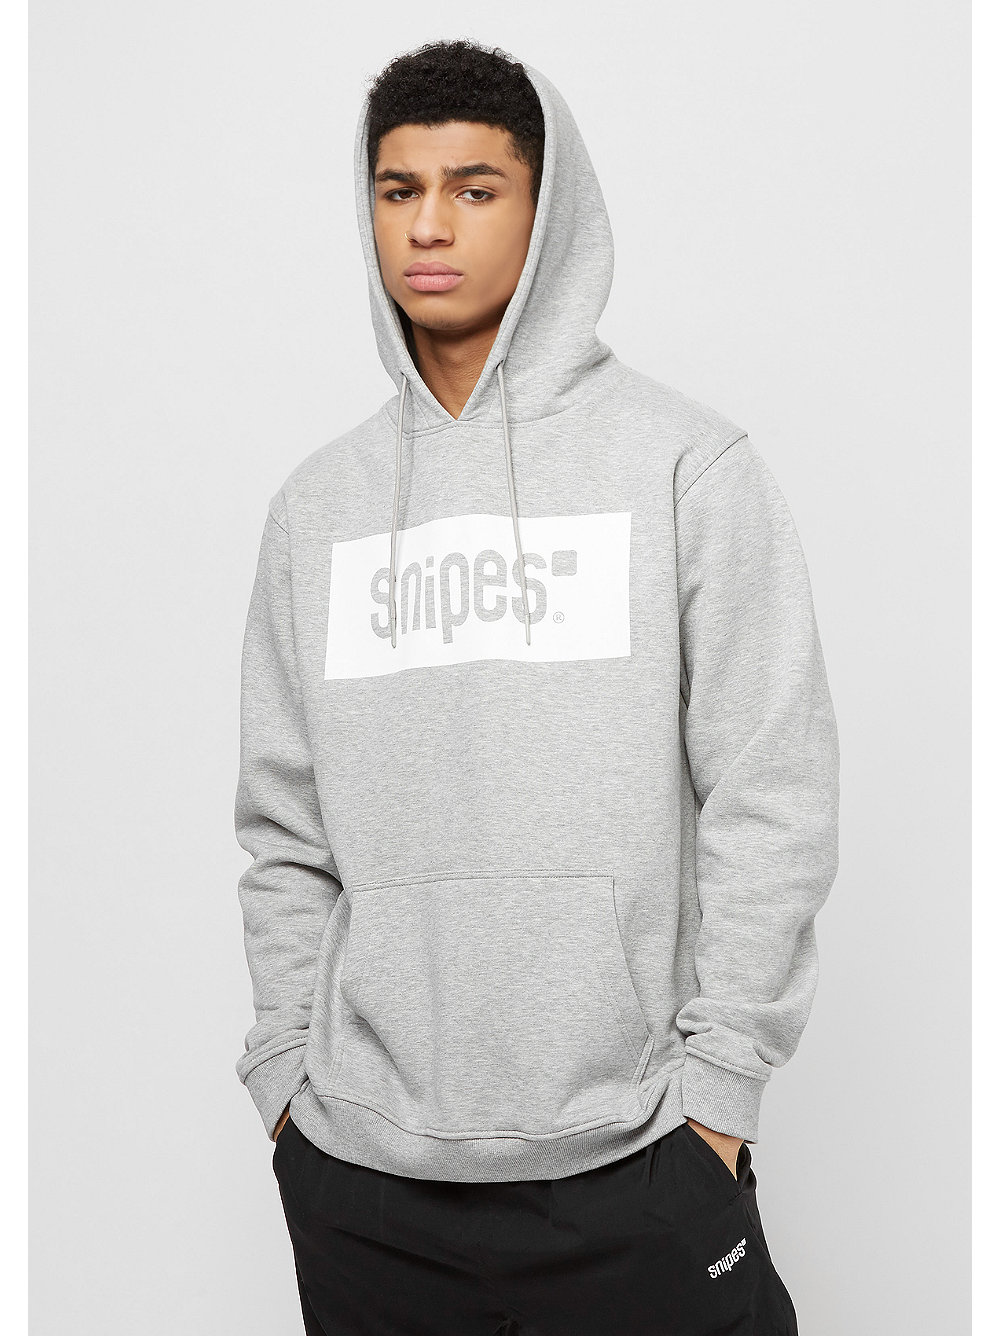 snipes hooded sweatshirt box logo heather grey white. Black Bedroom Furniture Sets. Home Design Ideas